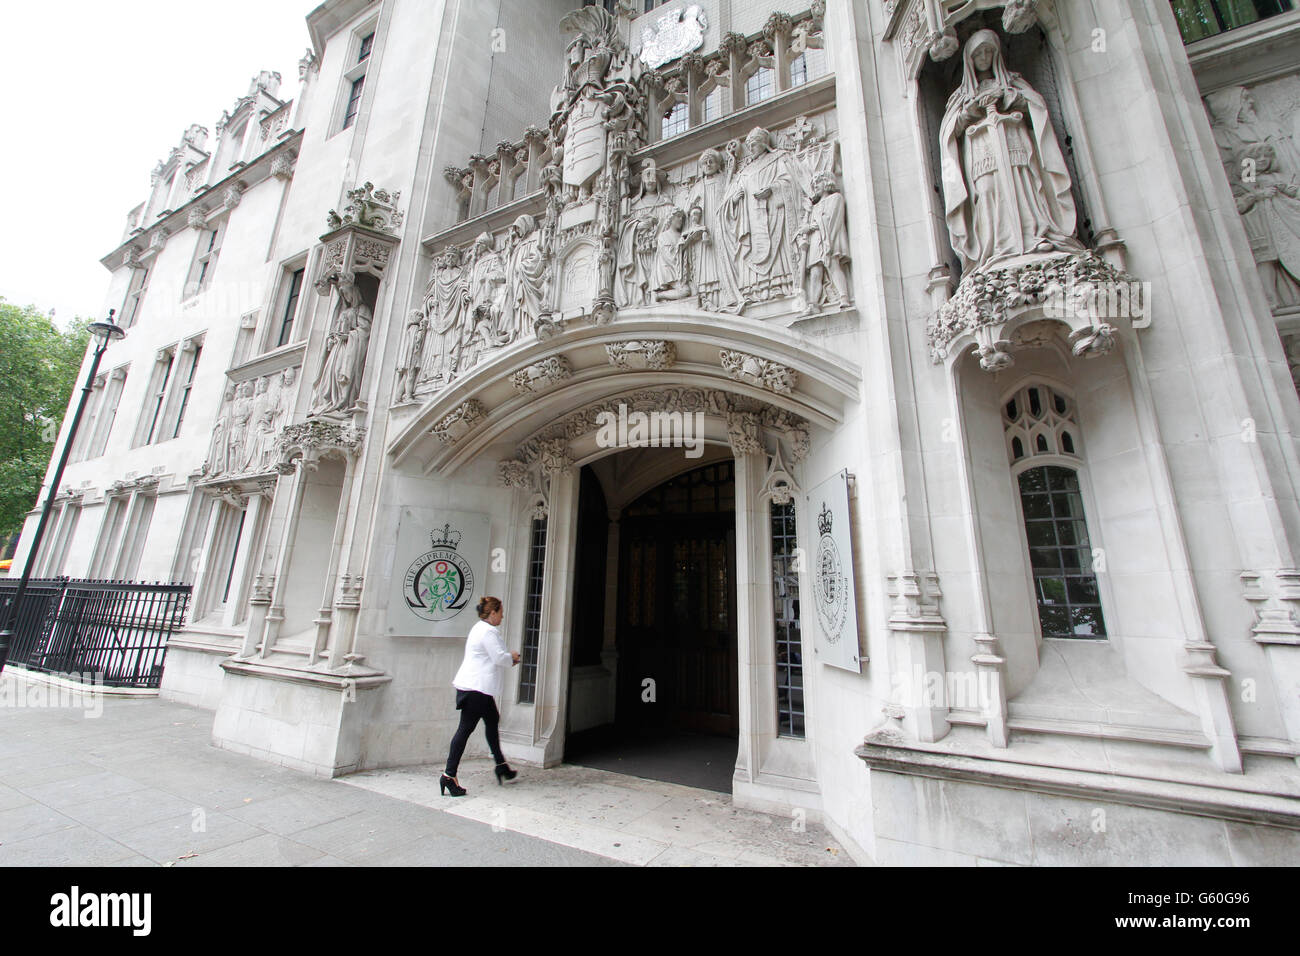 Judicial Committee of the Privy Council, The Supreme Court, Westminster, London - Stock Image